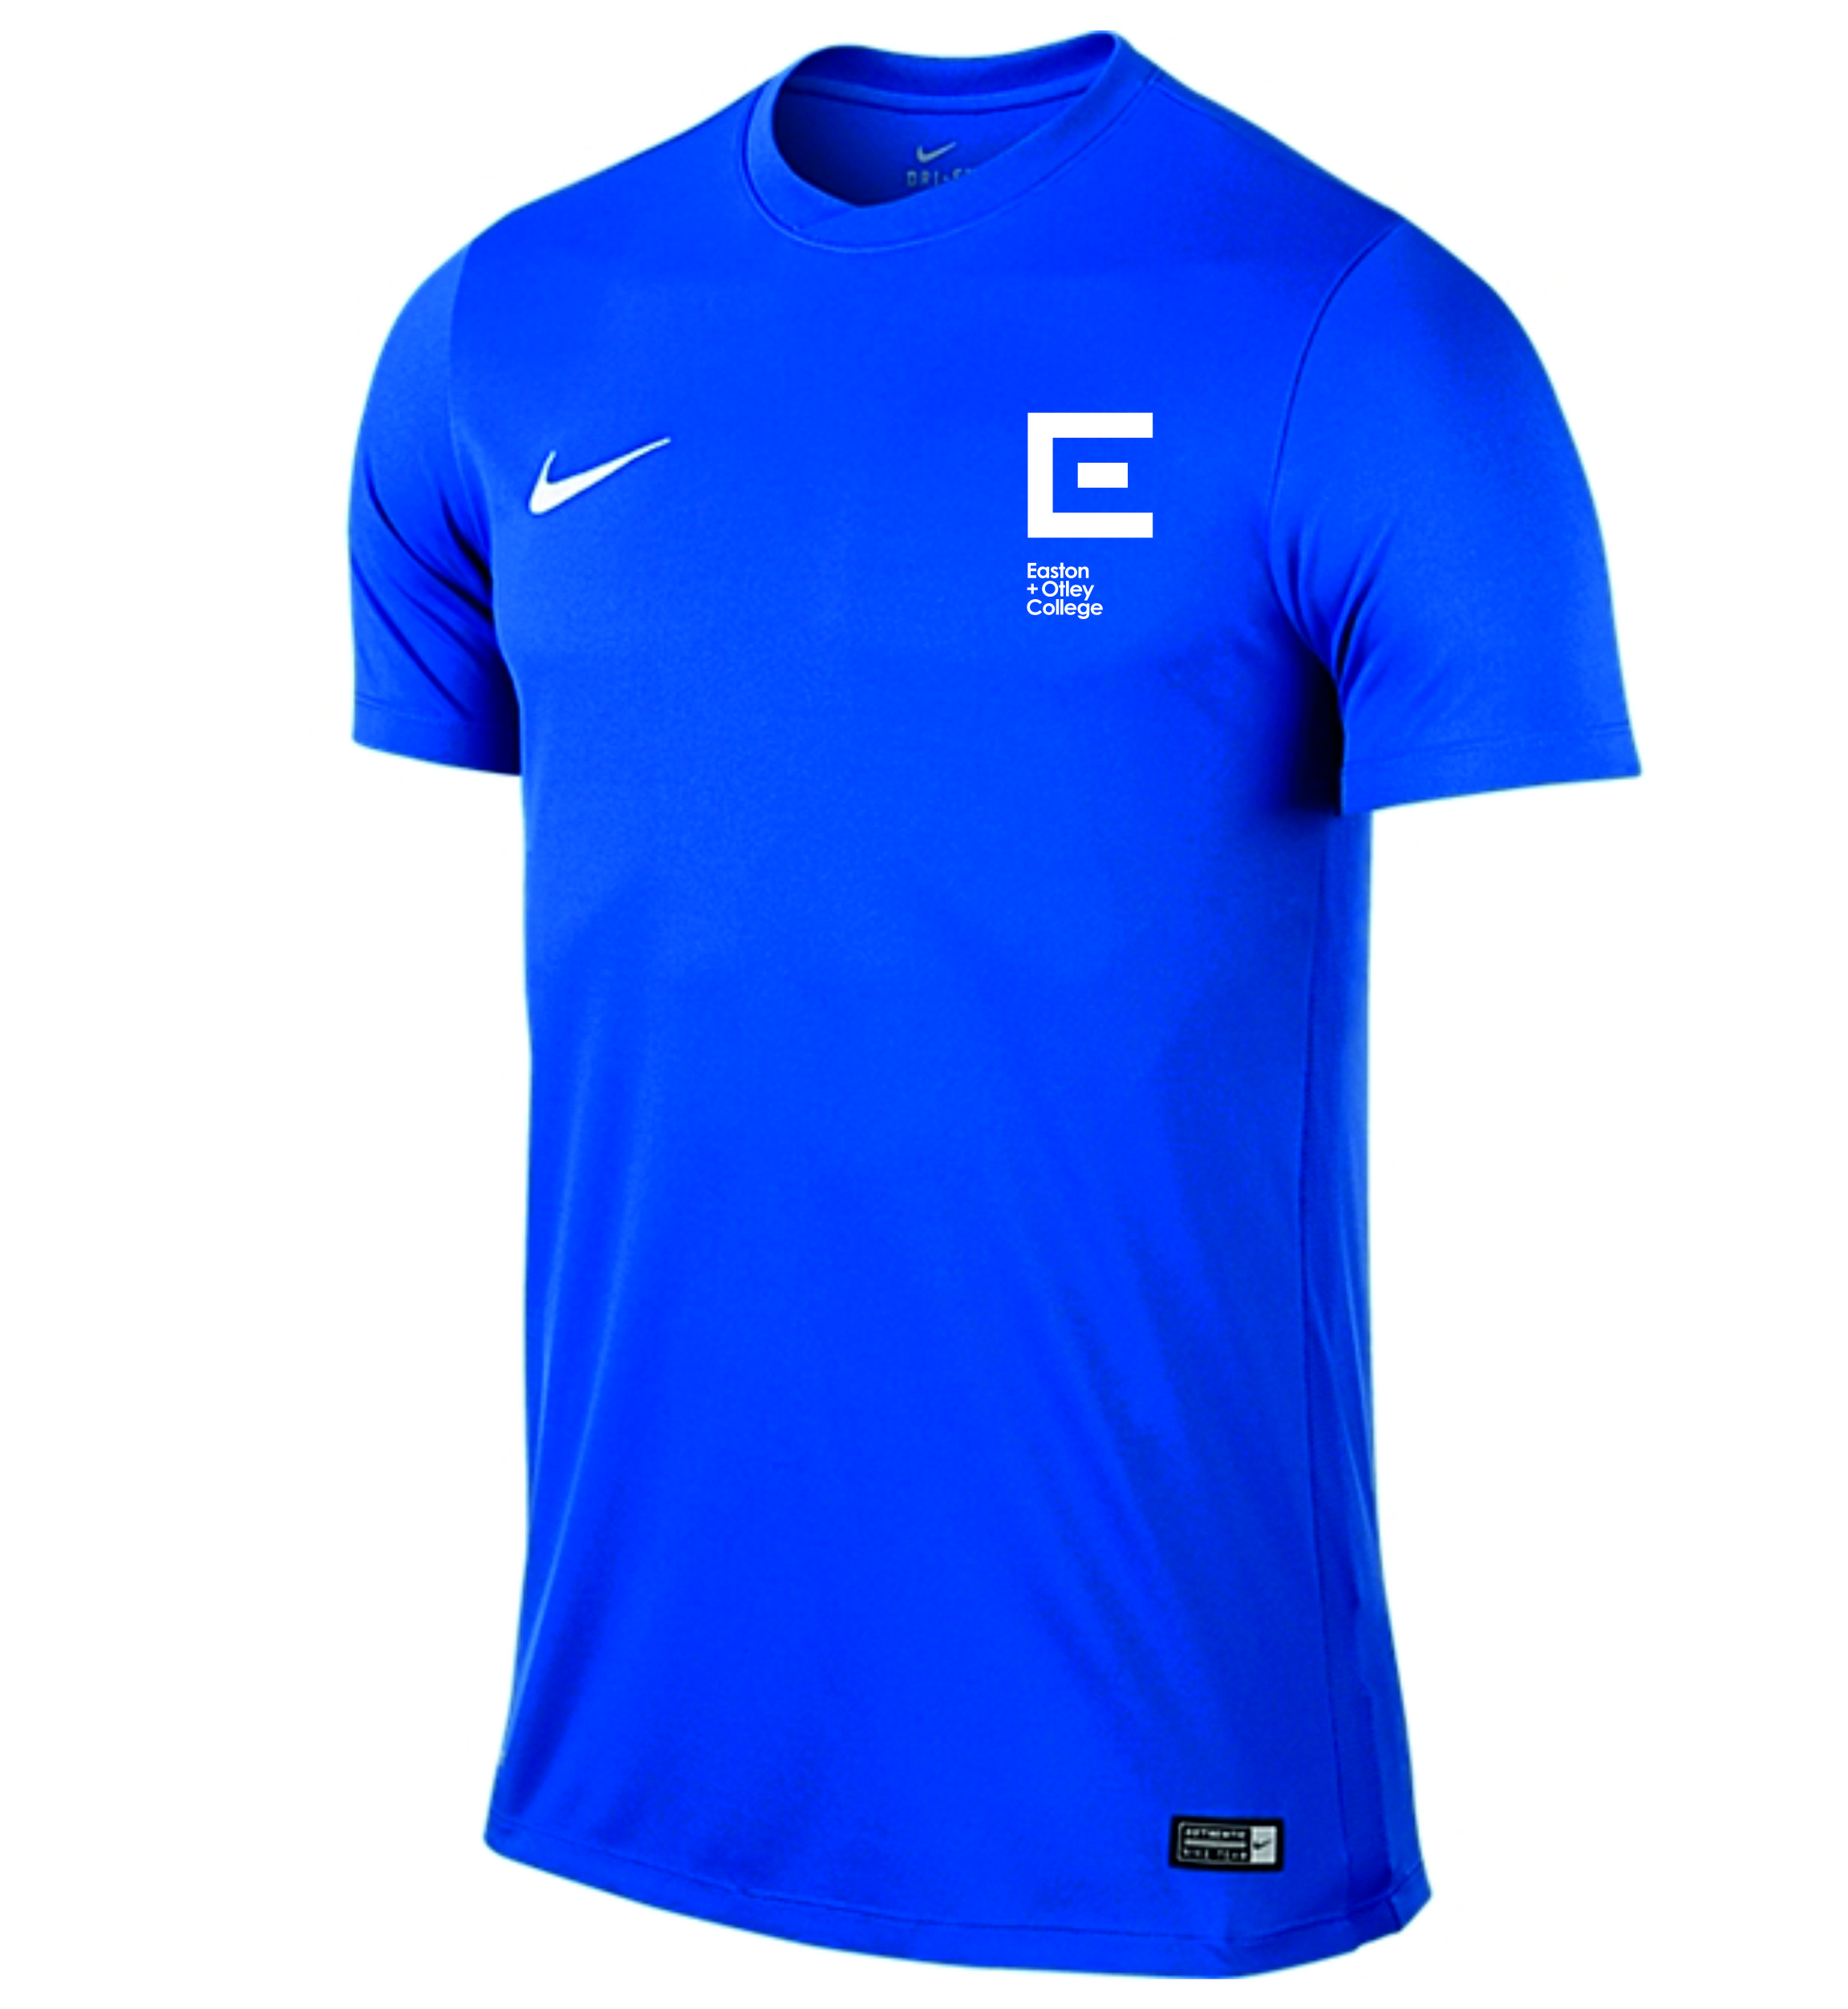 Easton Nike Park shirt